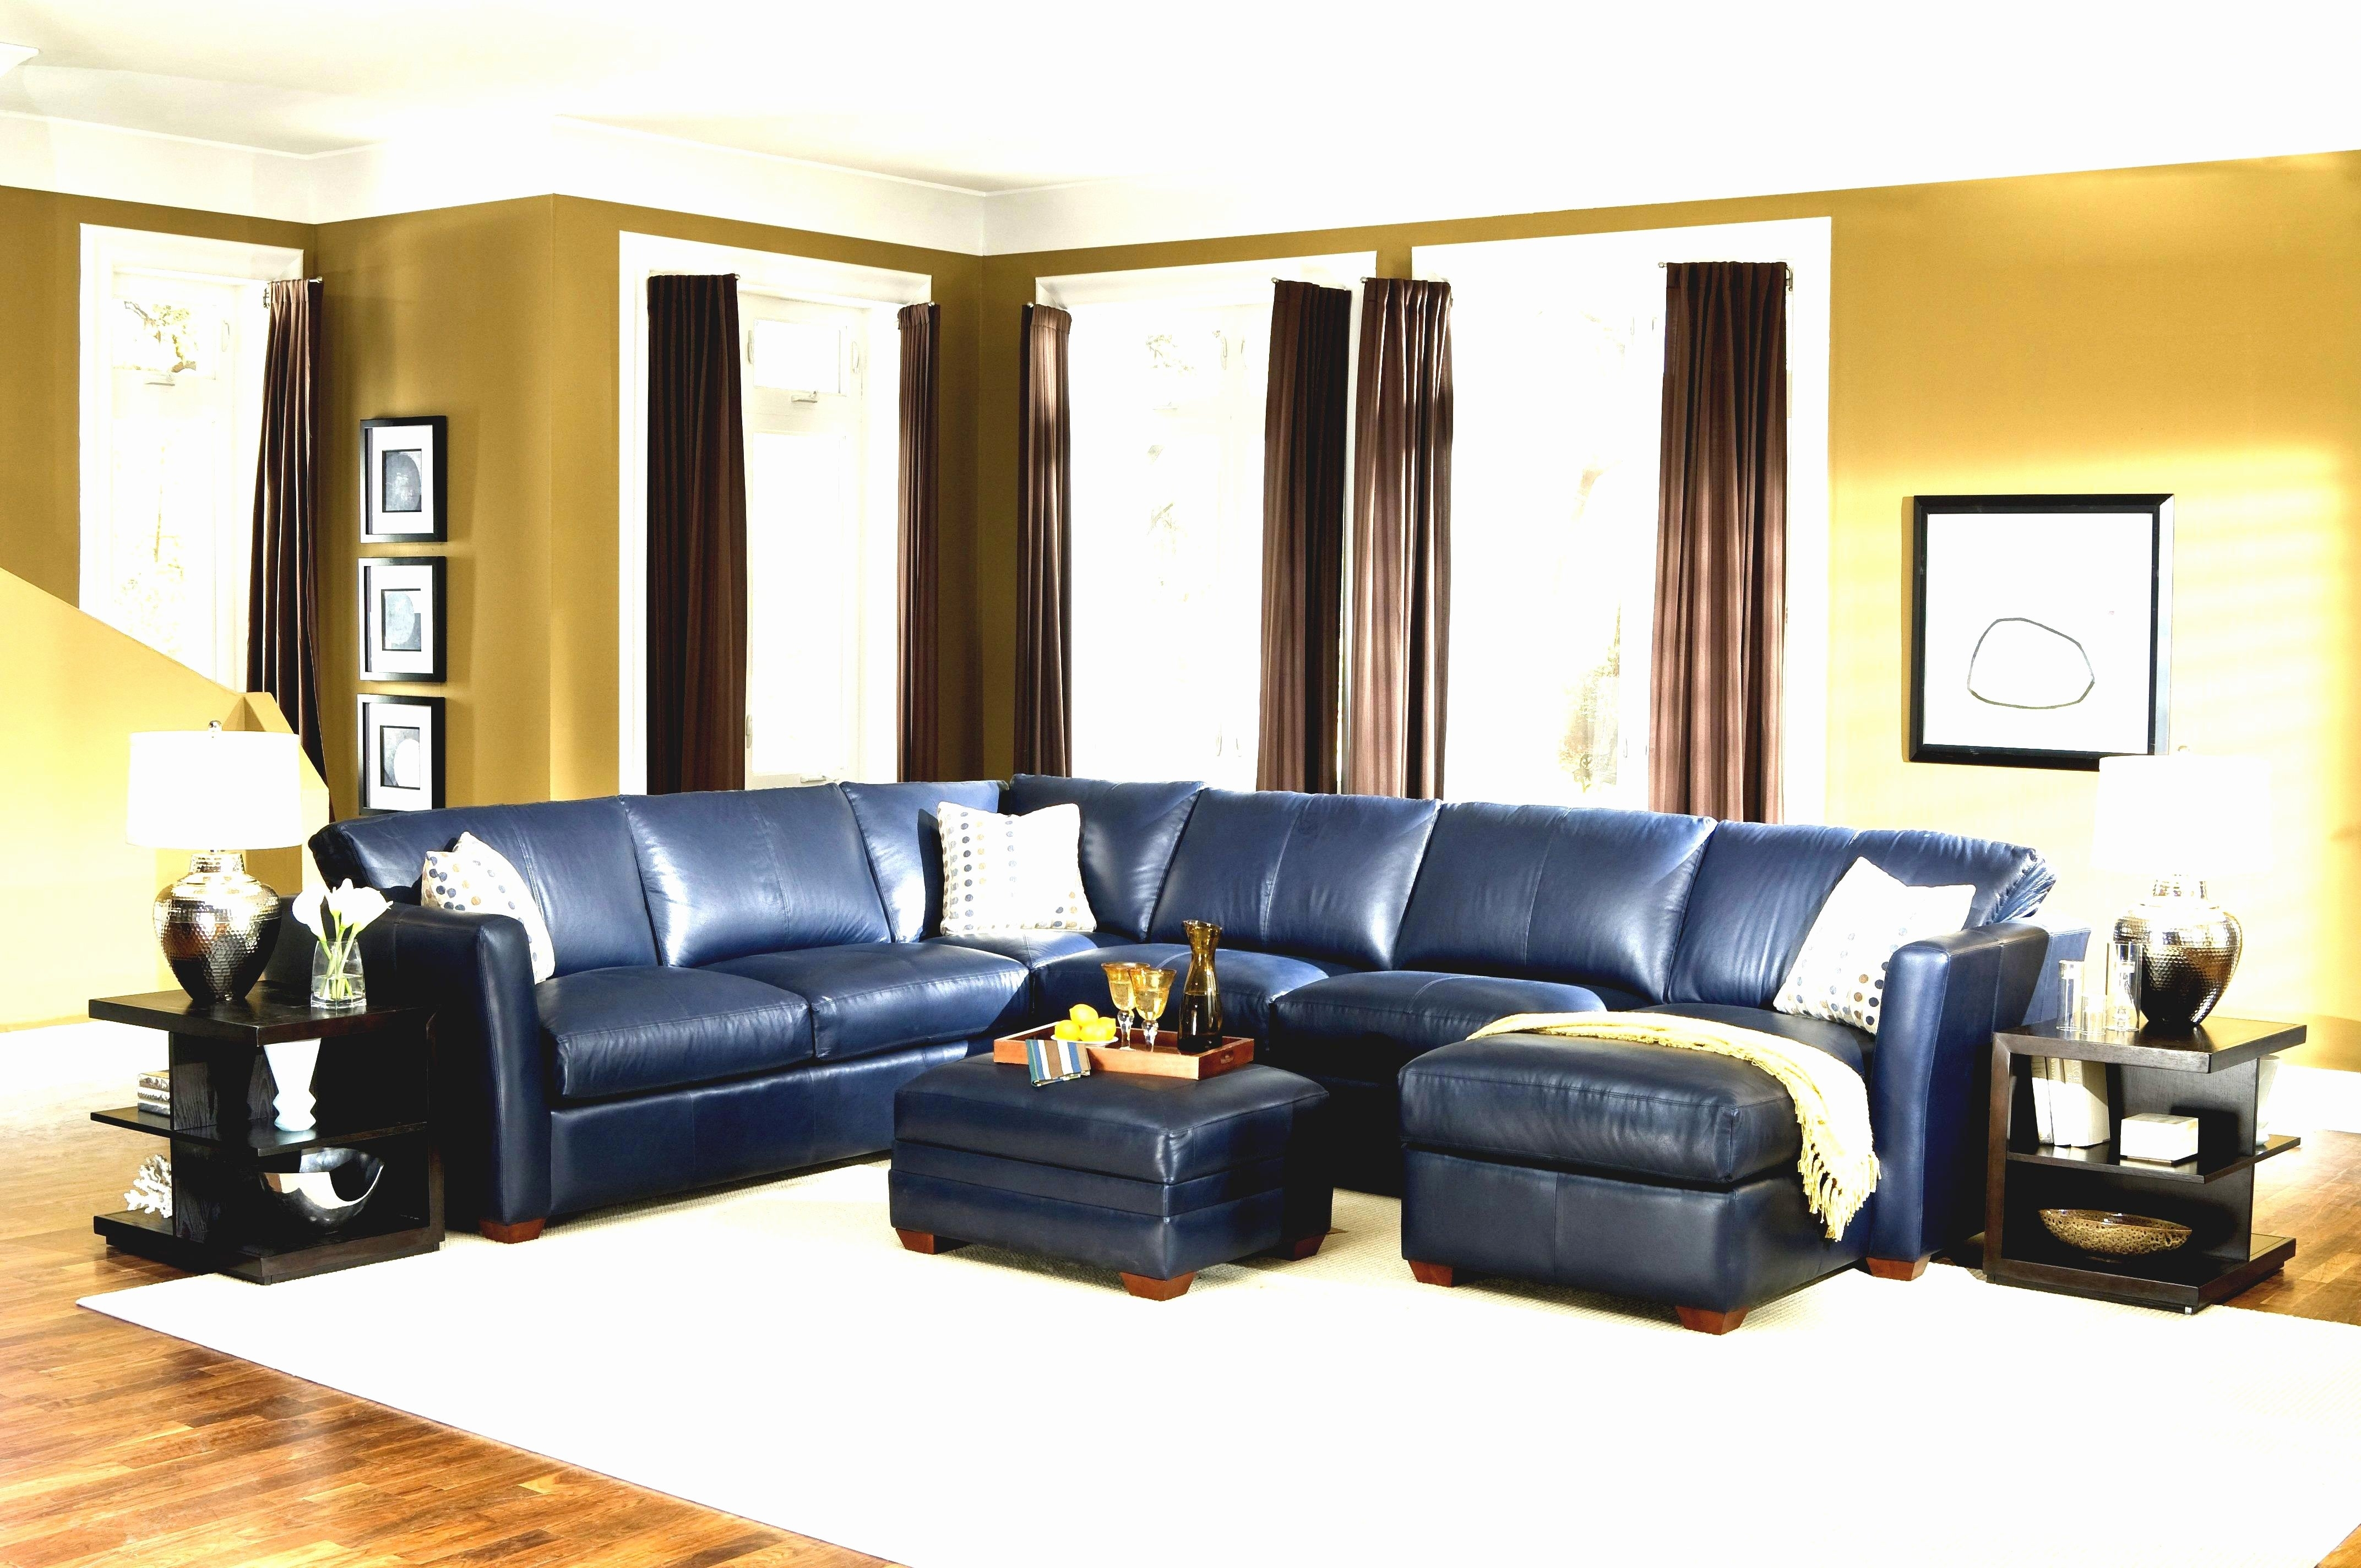 Genuine Leather Sectional Sofas Impressionnant Glamorous Light Blue intended for Glamour Ii 3 Piece Sectionals (Image 12 of 30)